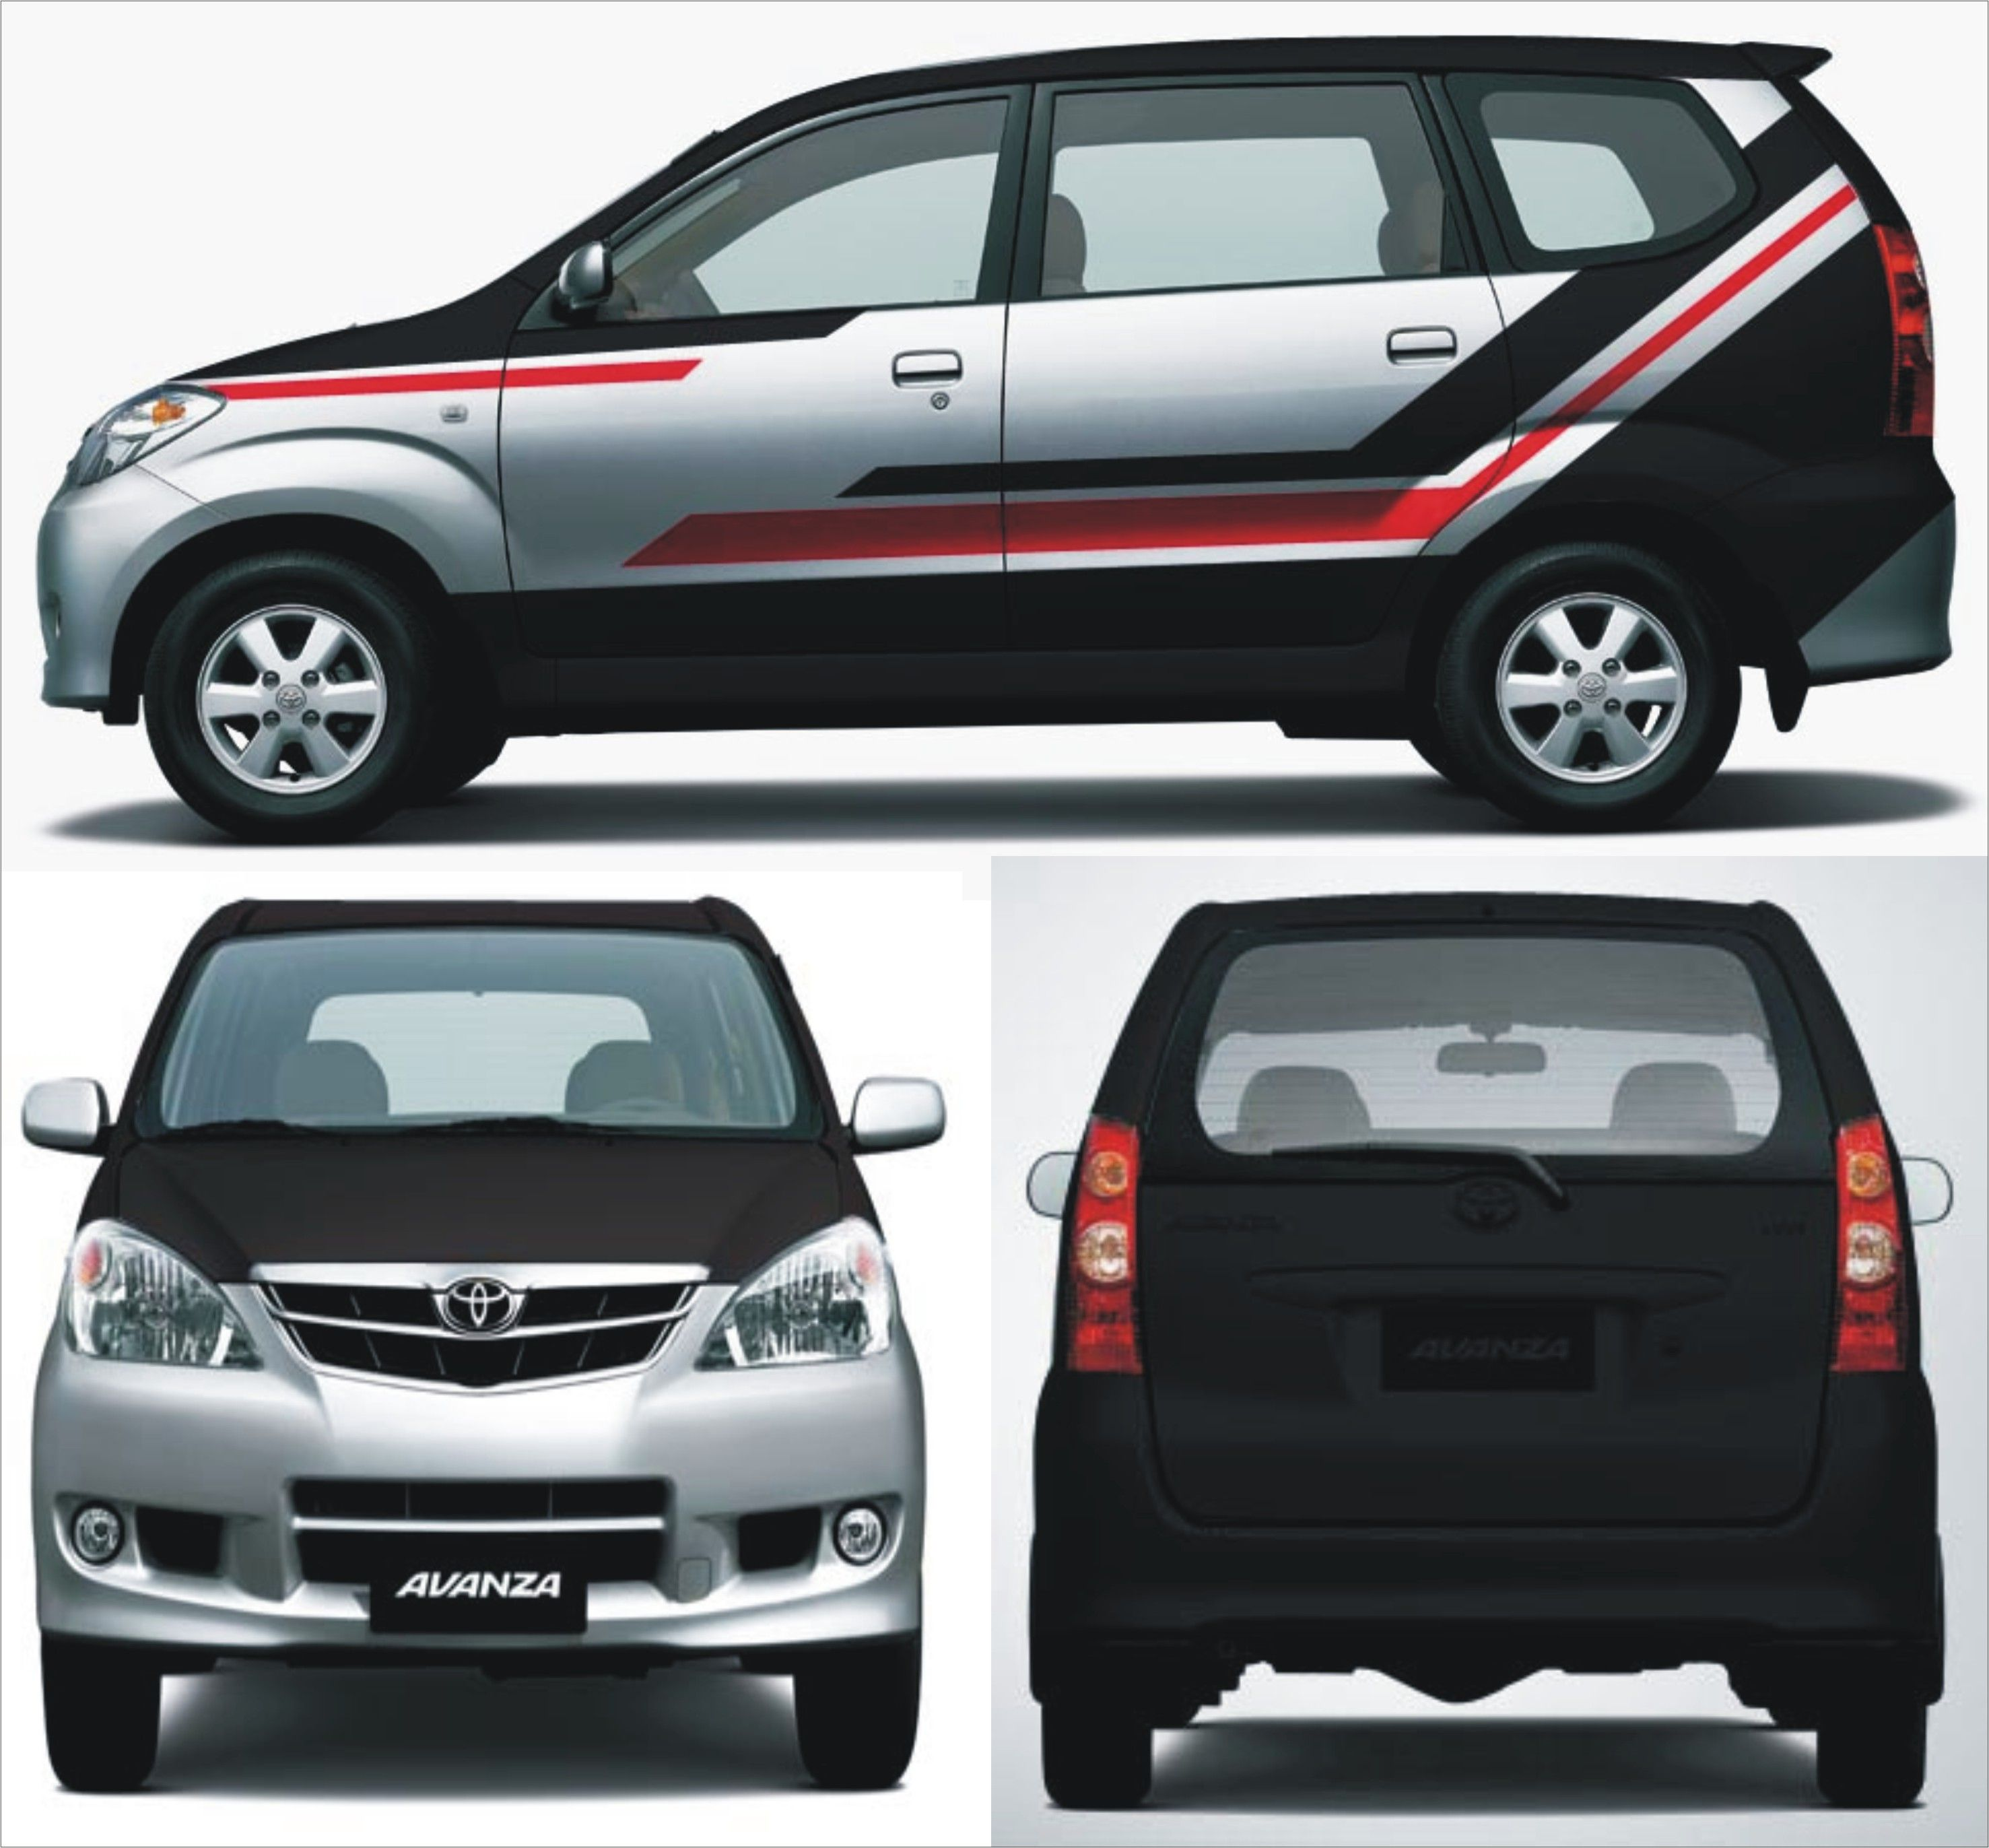 Toyota car sticker design - Toyota Avanza Silver Black Red Striping Wrapping Sticker Concept